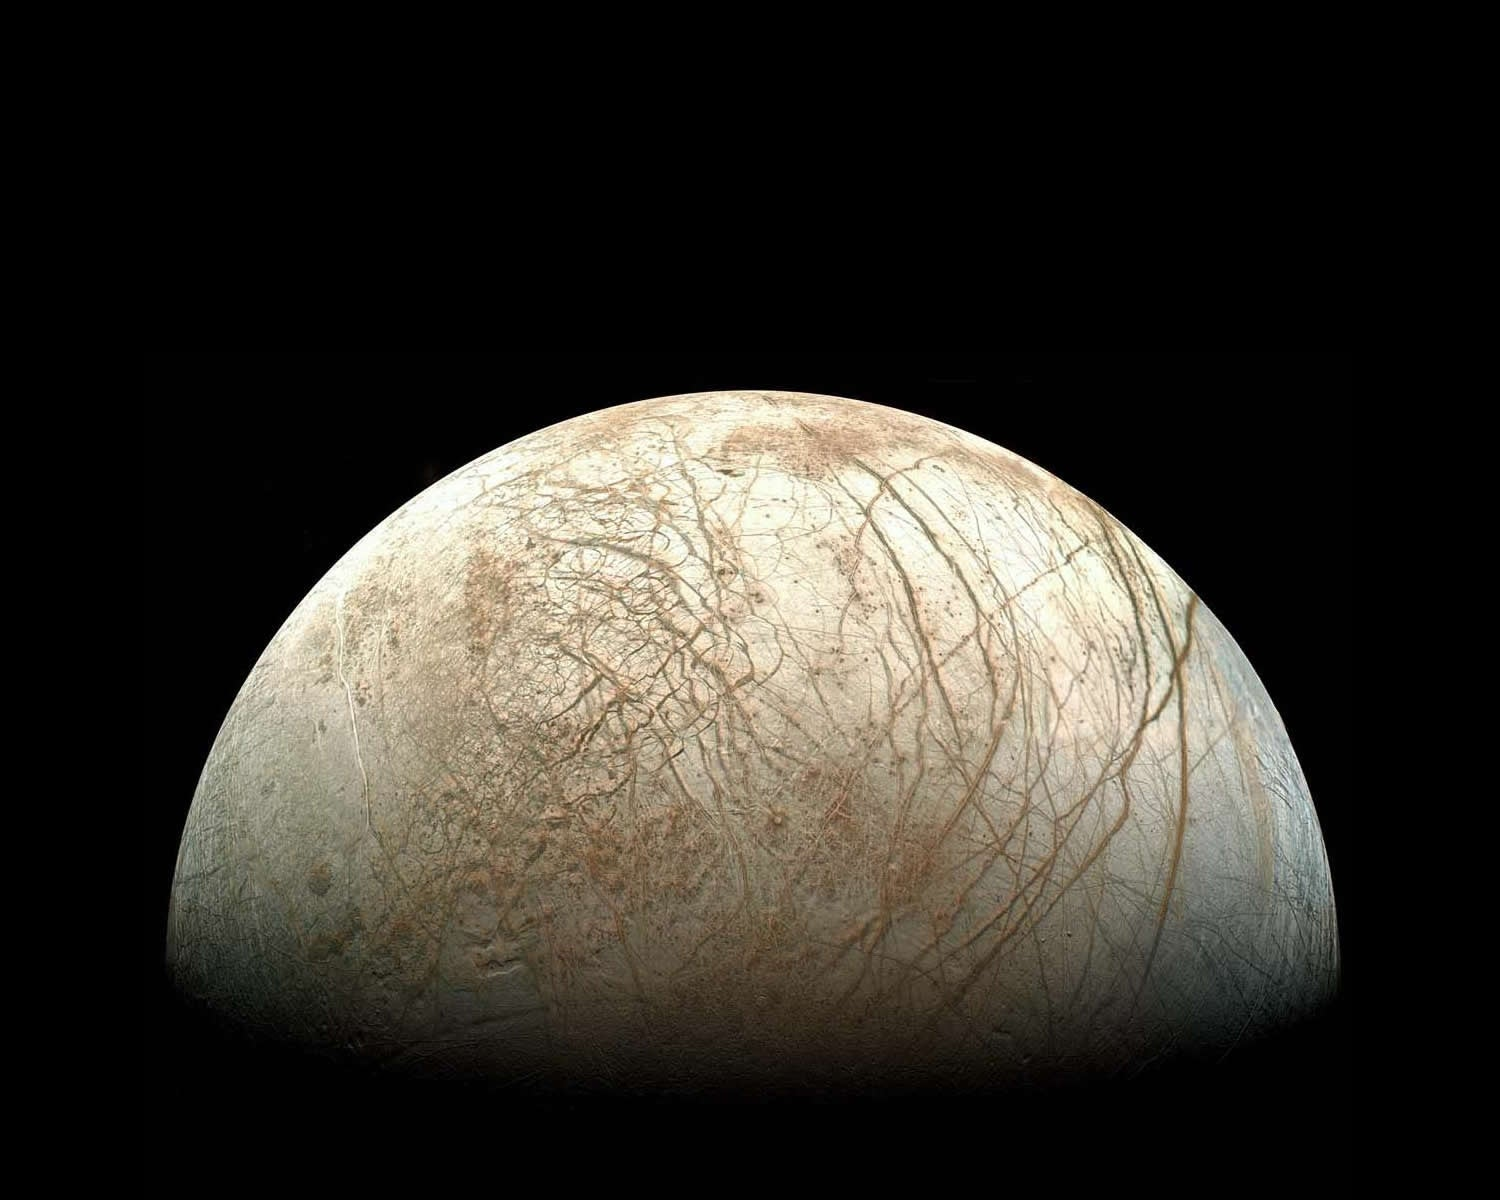 Europa Remastered: This 90s Space Image Has Been Retouched By NASA